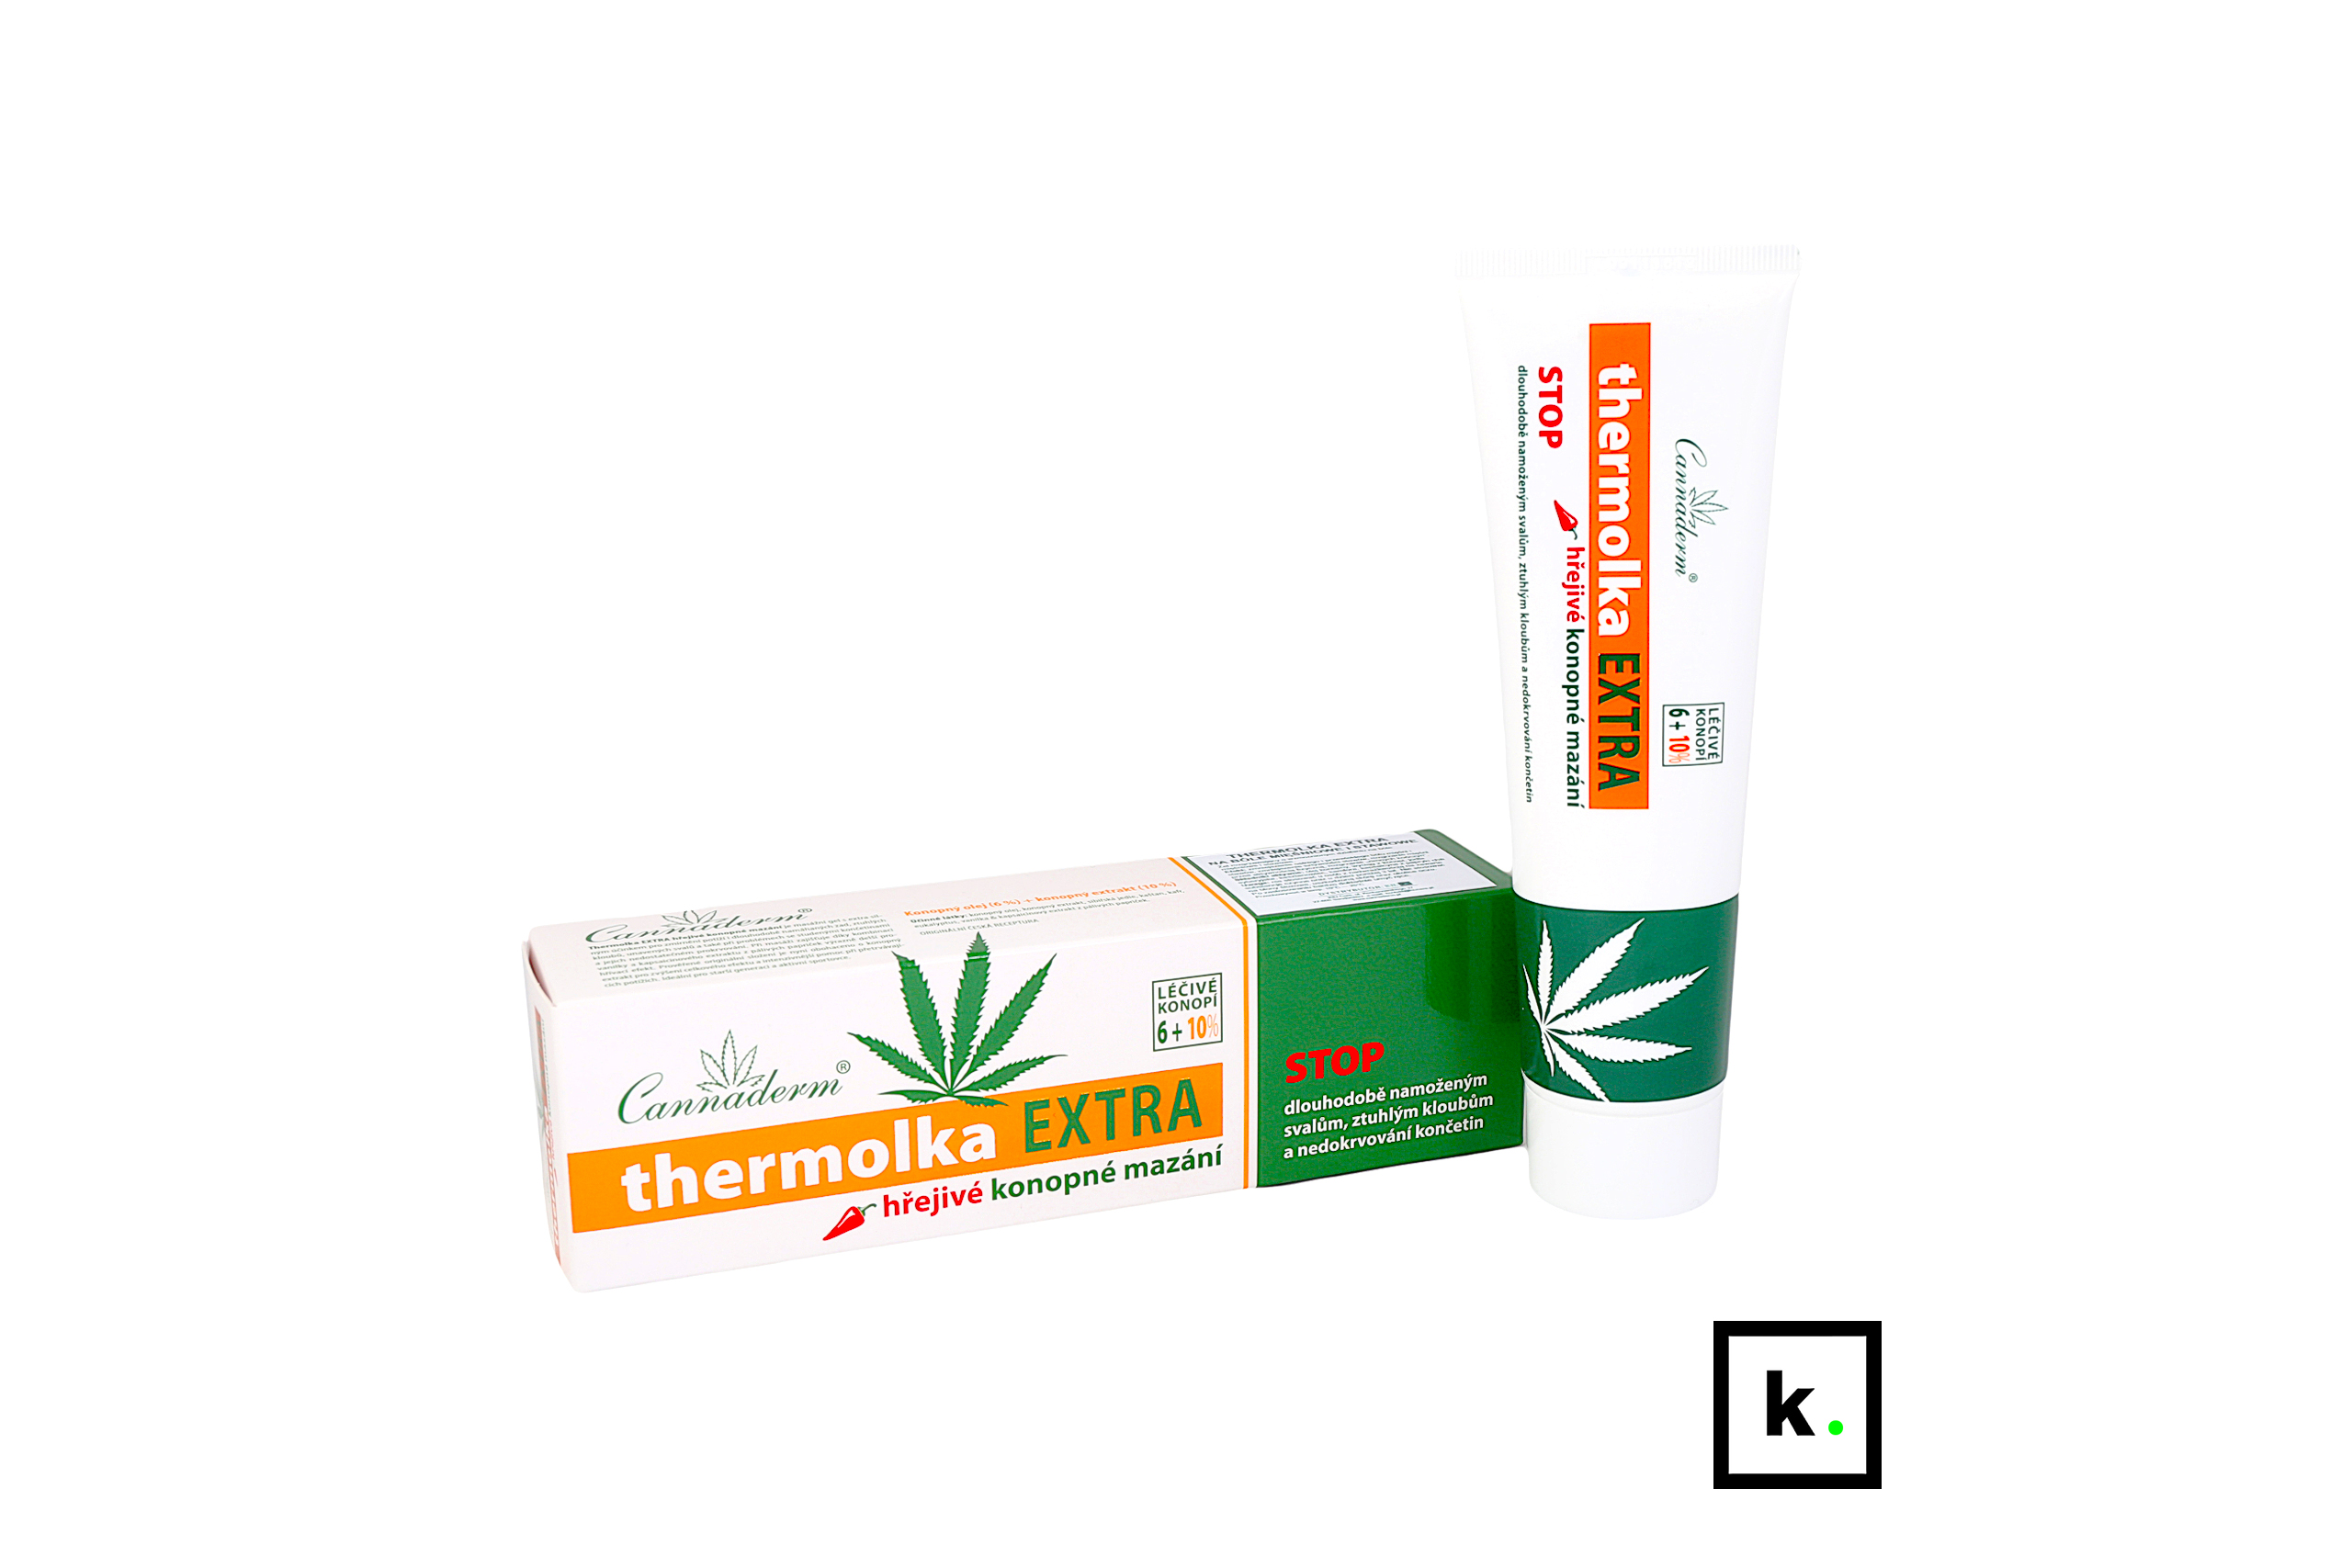 Cannaderm Thermolka Extra żel konopny rozgrzewający - 150 ml